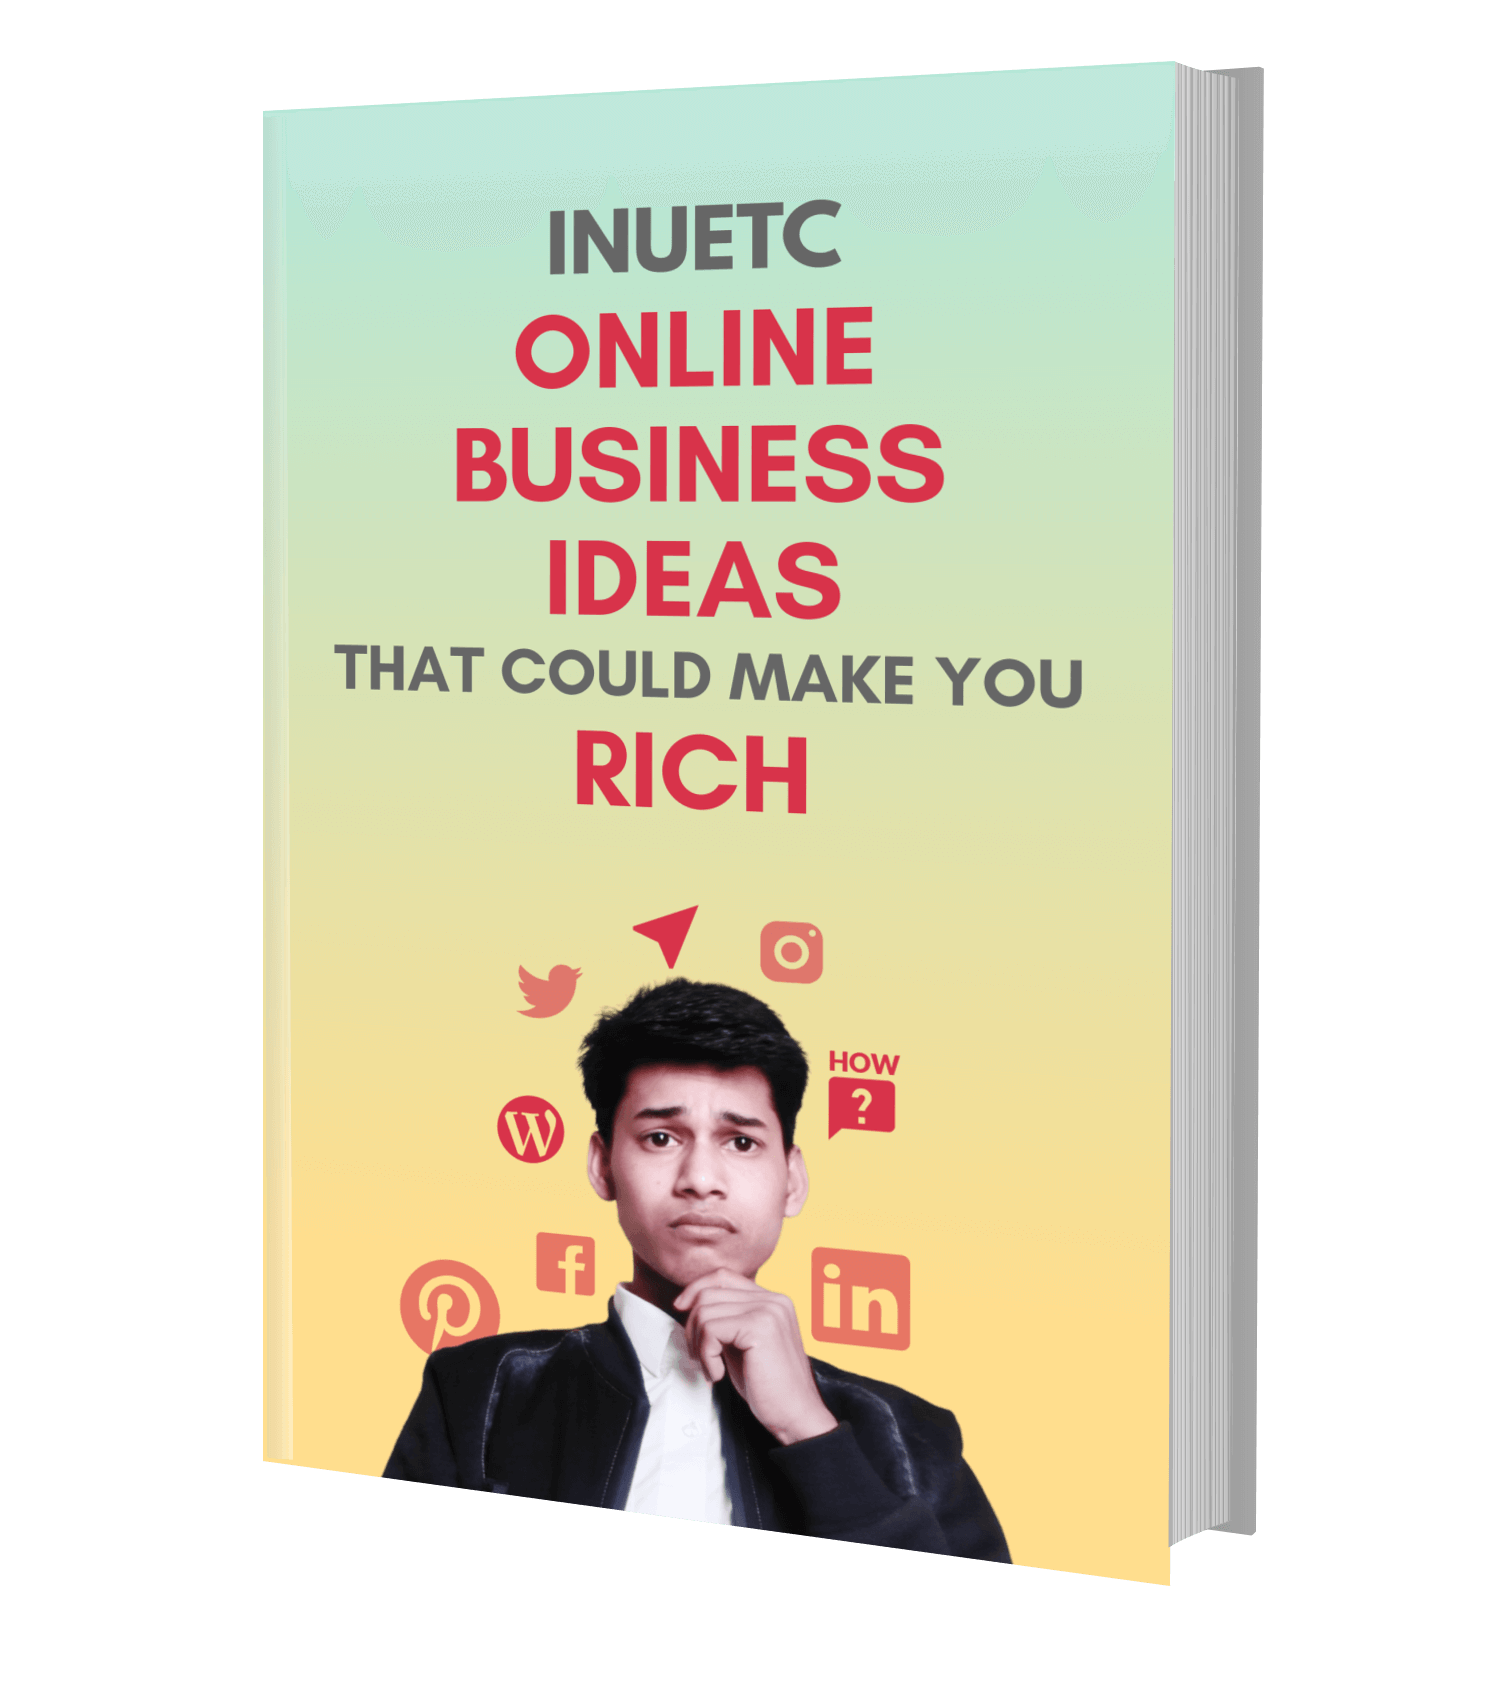 Online Business Ideas That Could Make You Rich - Inu Etc - BOOK - PDF FREE DOWNLOAD